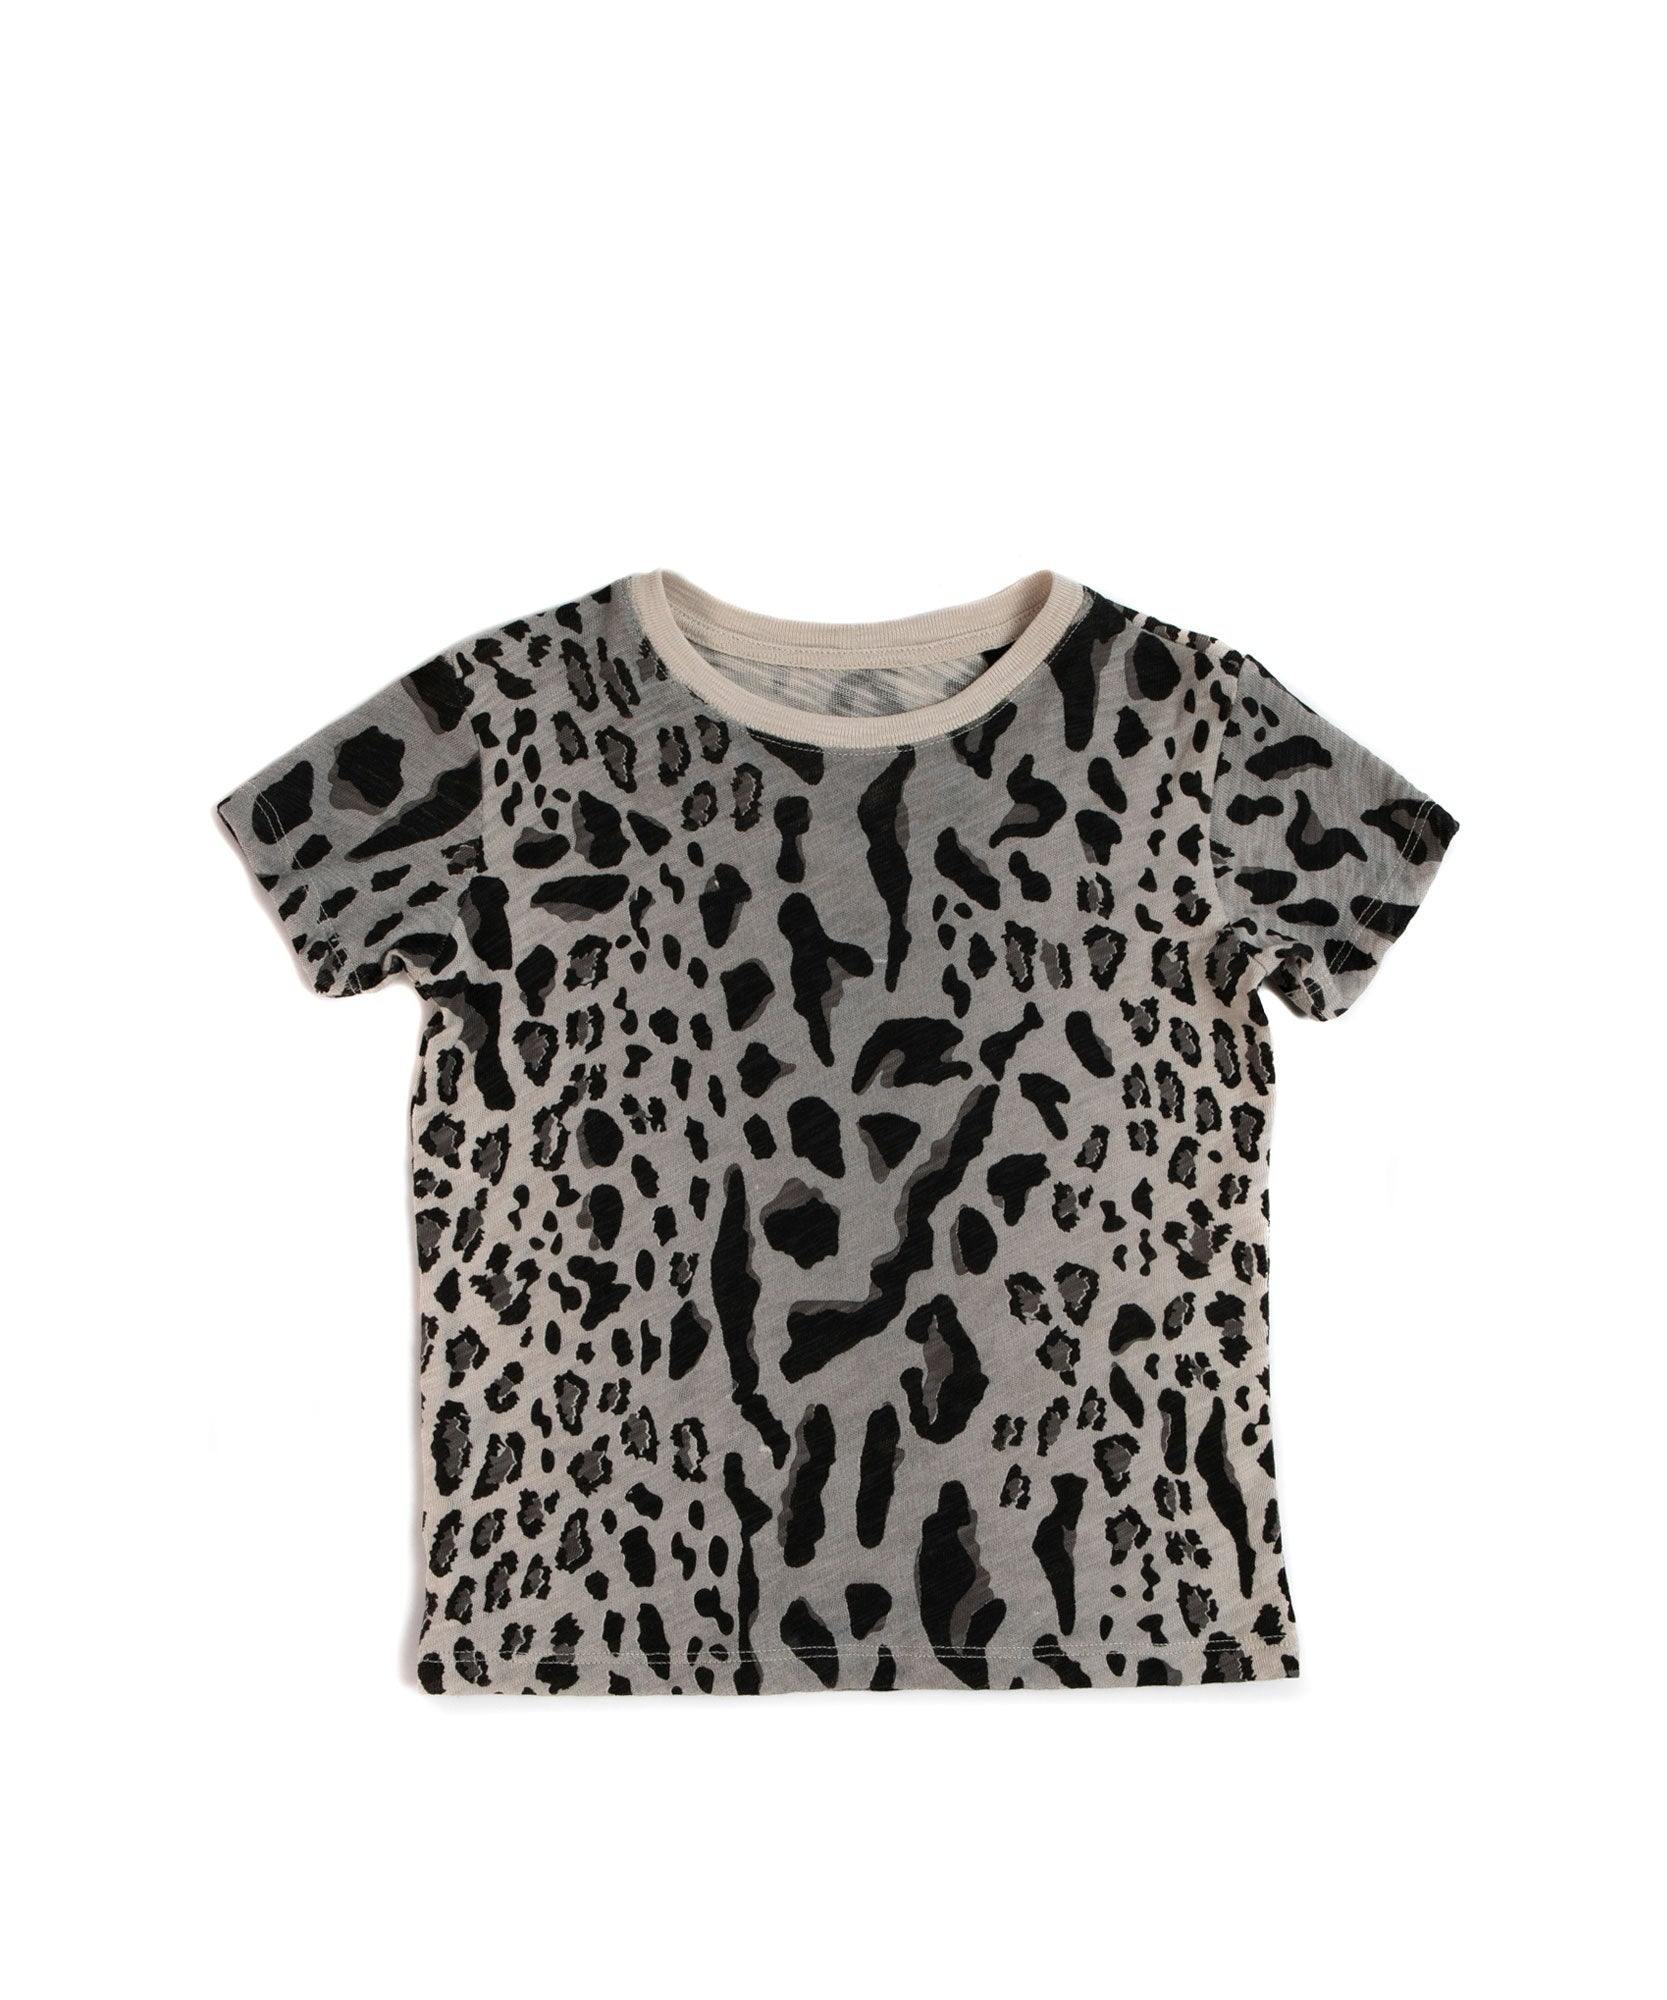 Mixed Leopard Print Kids Slub Jersey Short Sleeve Tee - Kid's Cotton Short Sleeve Tee by ATM Anthony Thomas Melillo